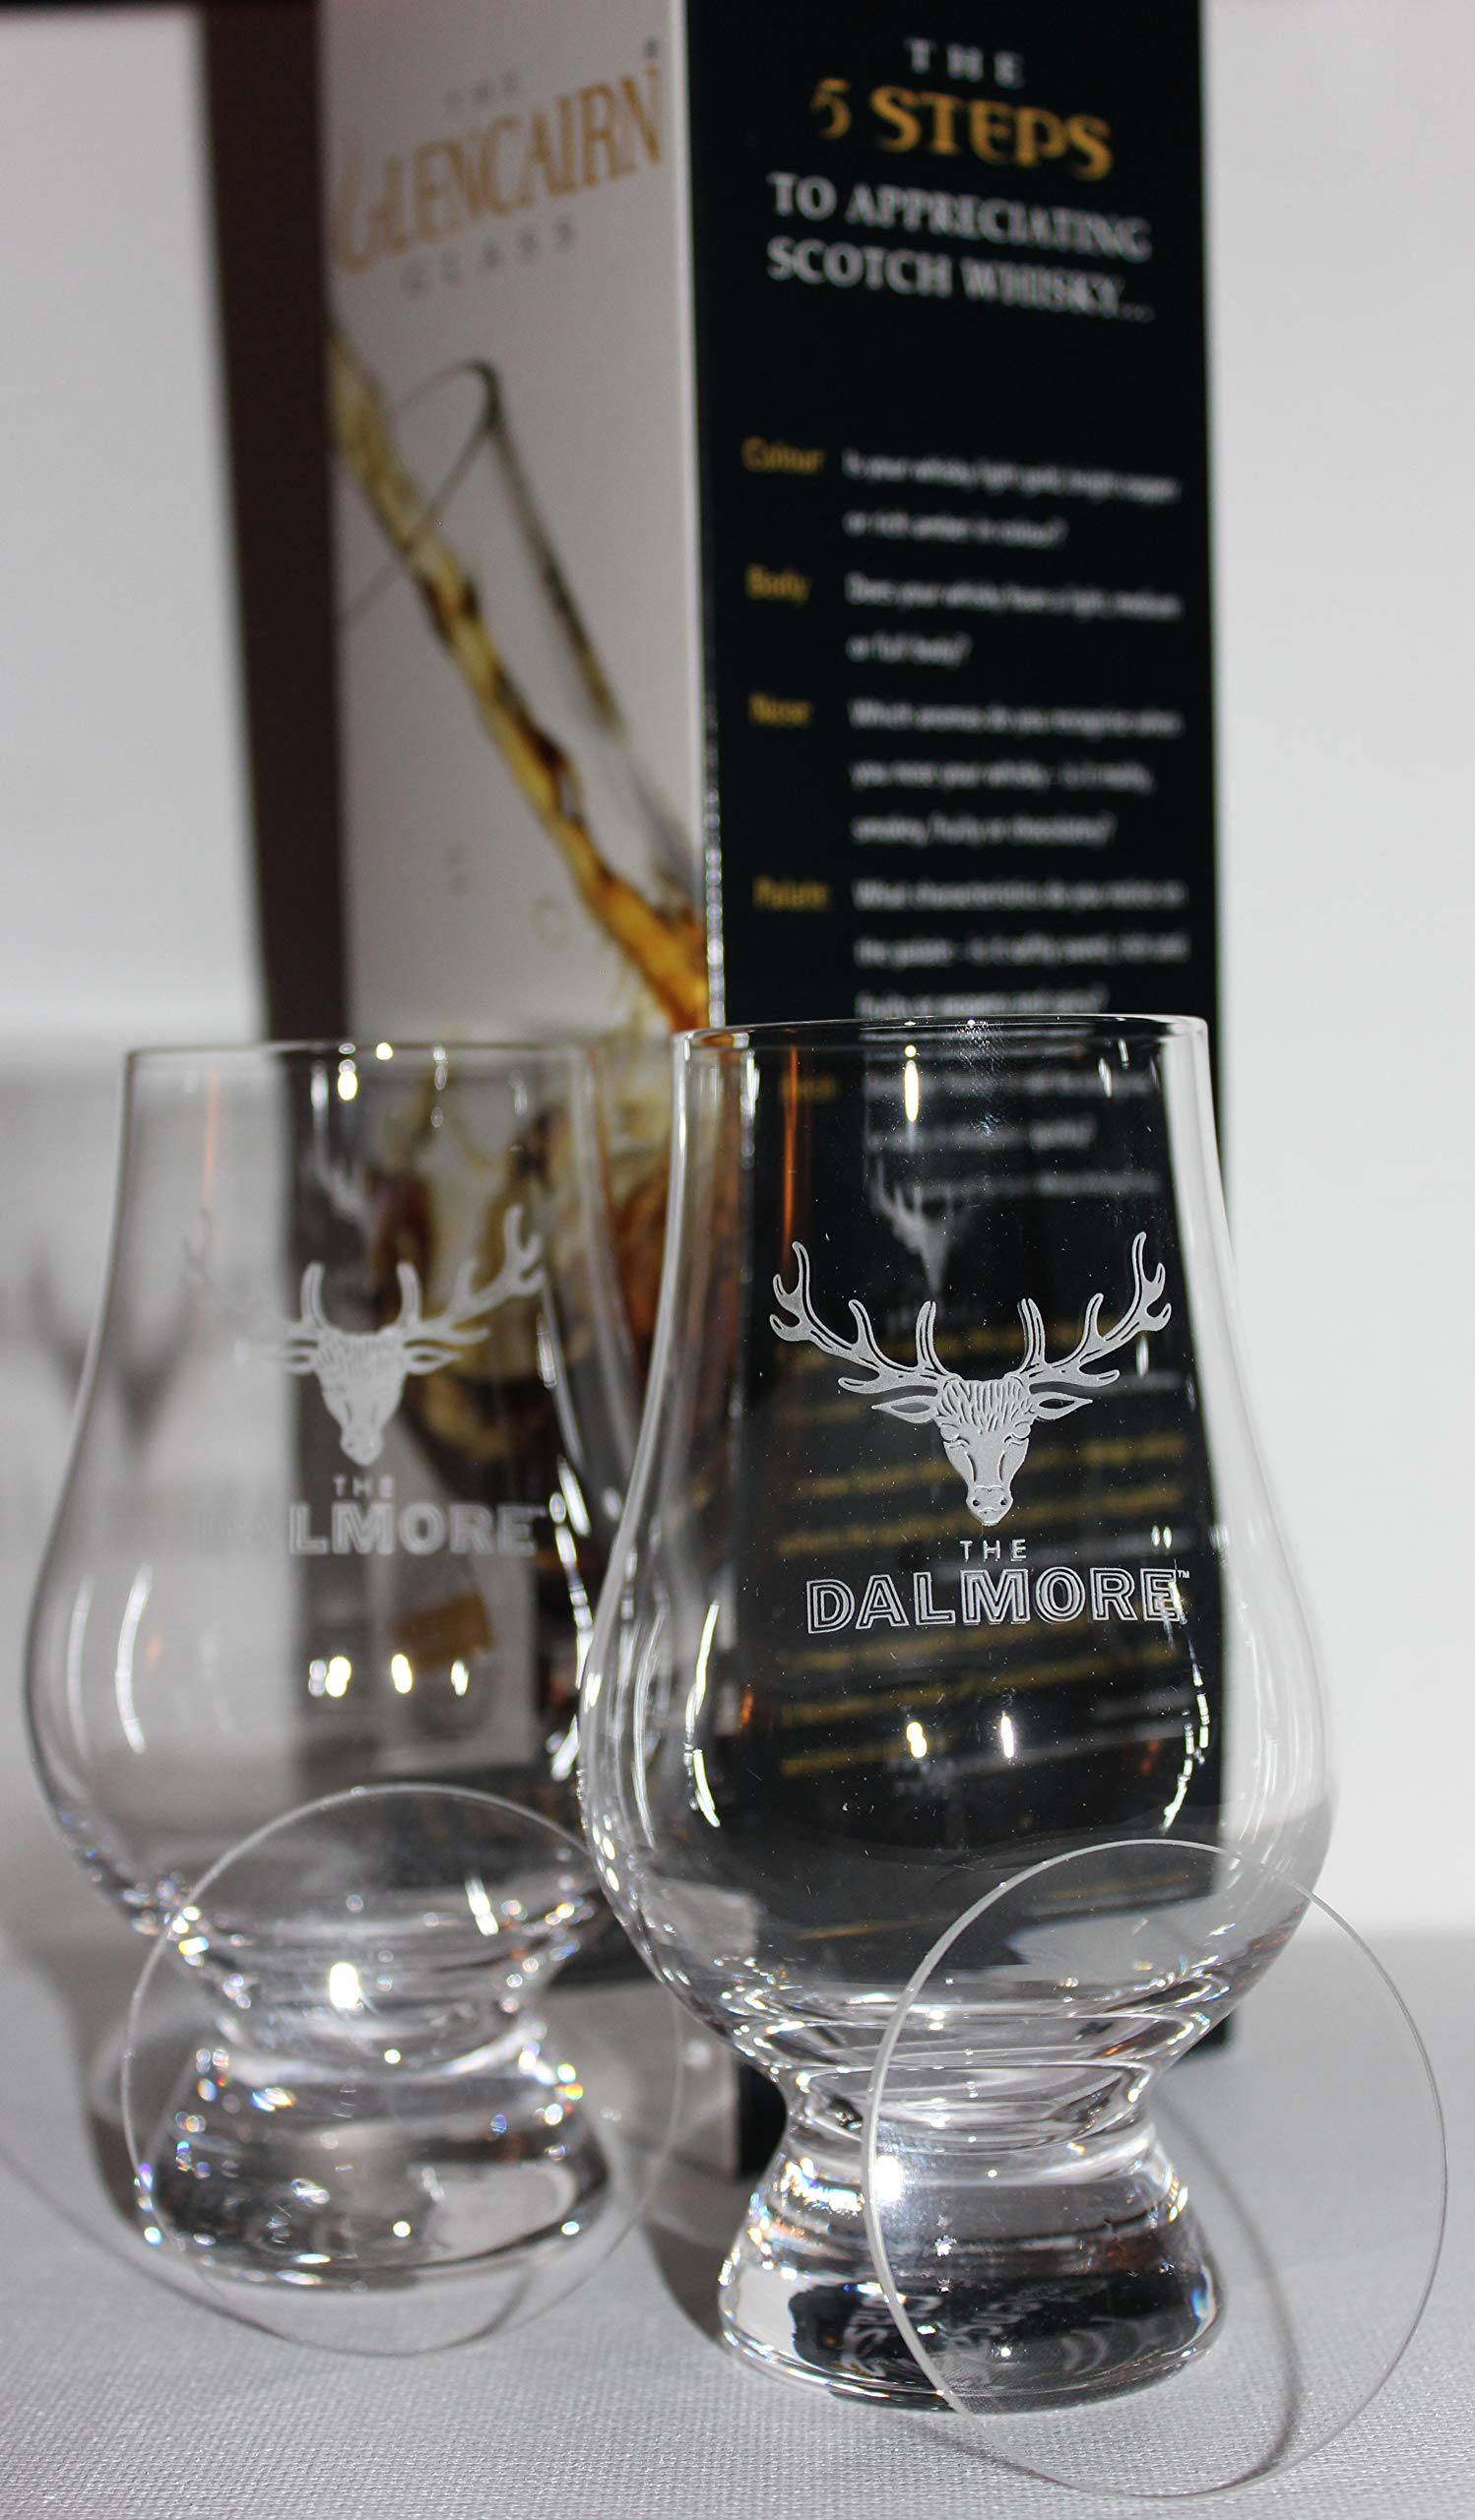 DALMORE TWIN PACK GLENCAIRN SCOTCH MALT WHISKY TASTING GLASSES WITH TWO WATCH GLASS COVERS